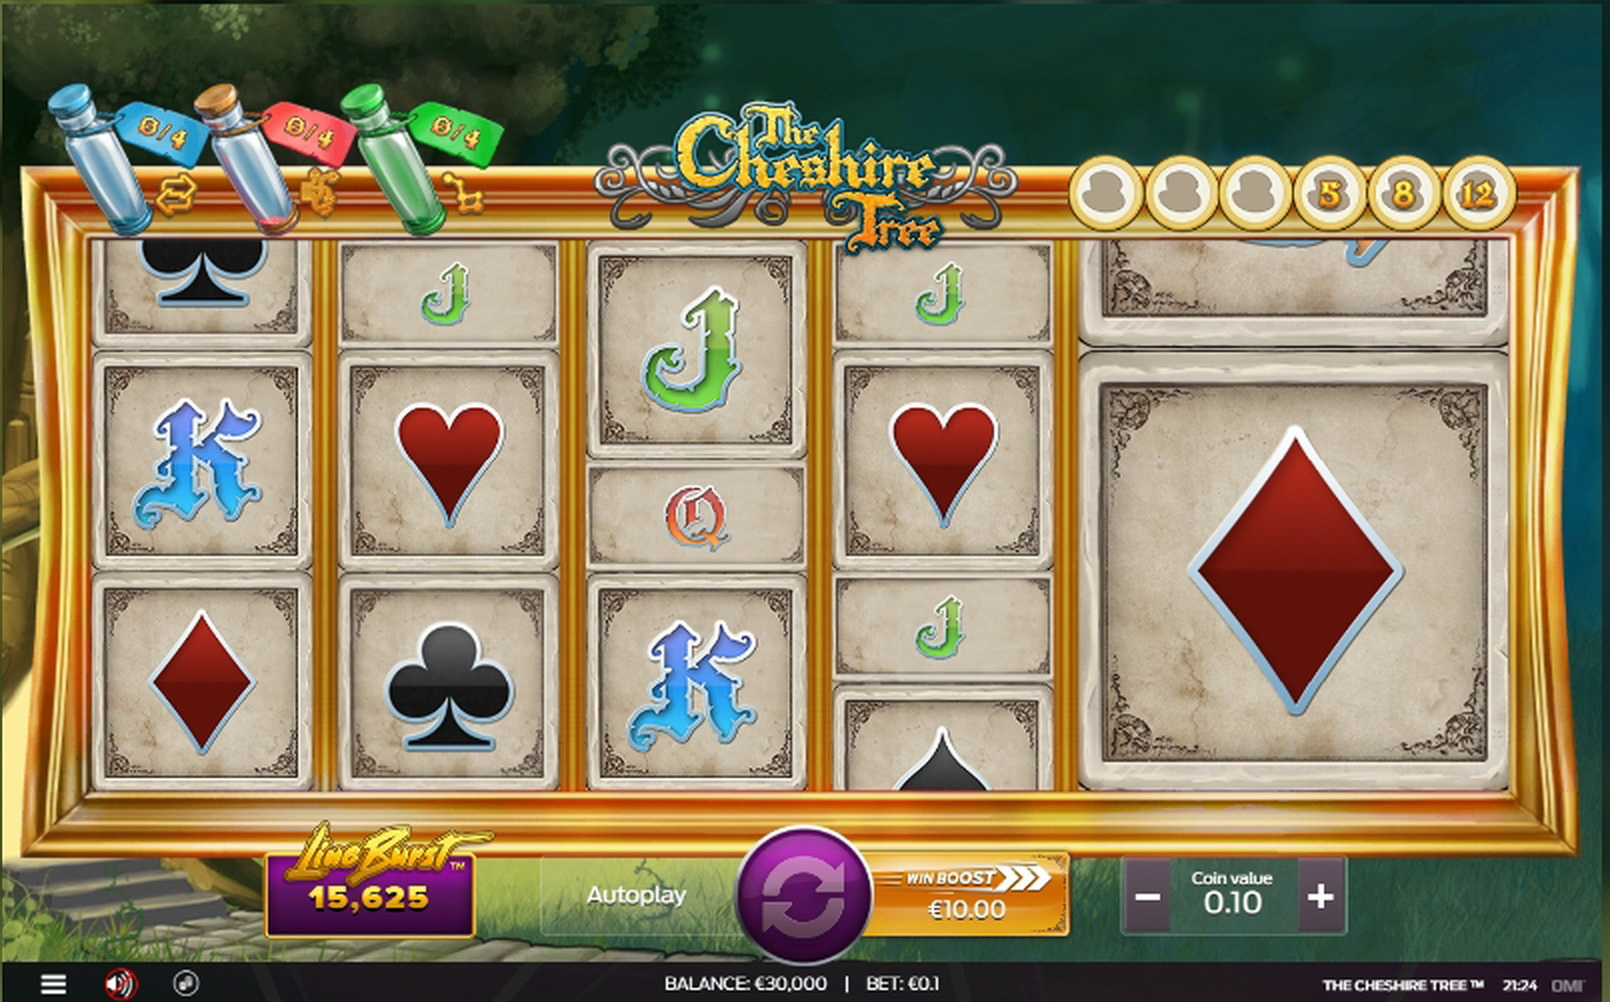 Reels in The Cheshire Tree Slot Game by OMI Gaming